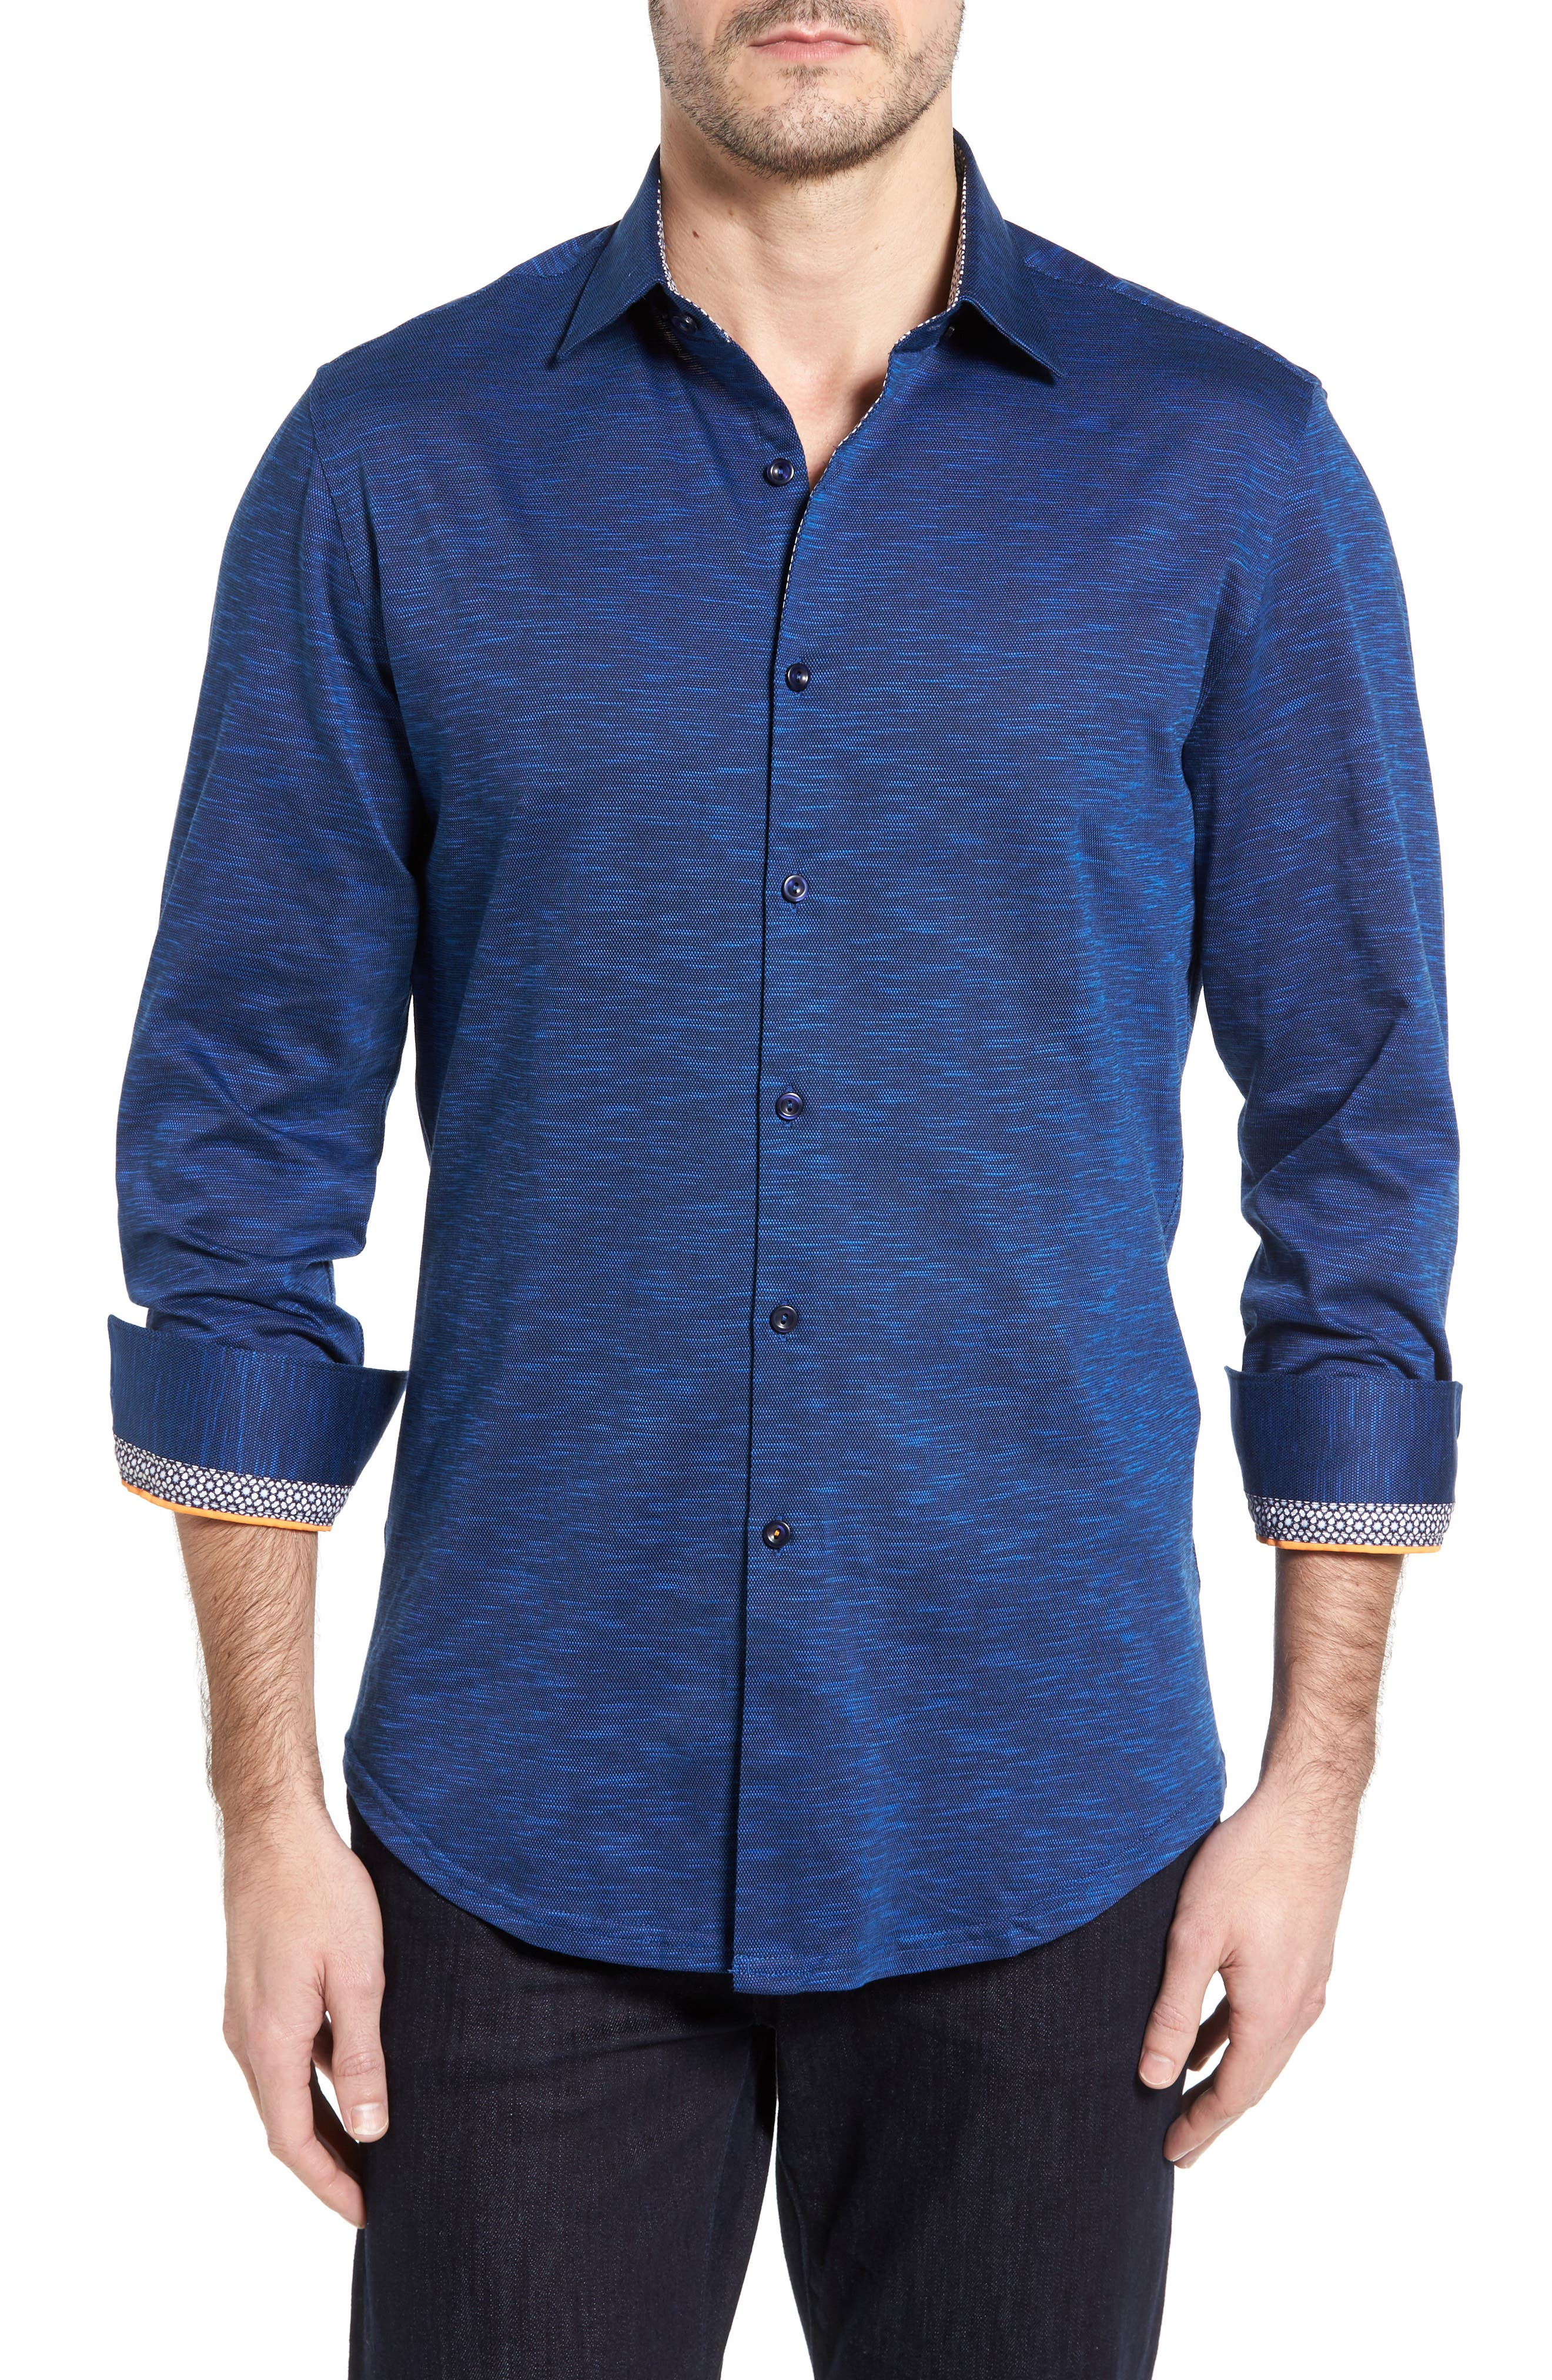 Flamé Knit Sport Shirt,                             Main thumbnail 1, color,                             Navy